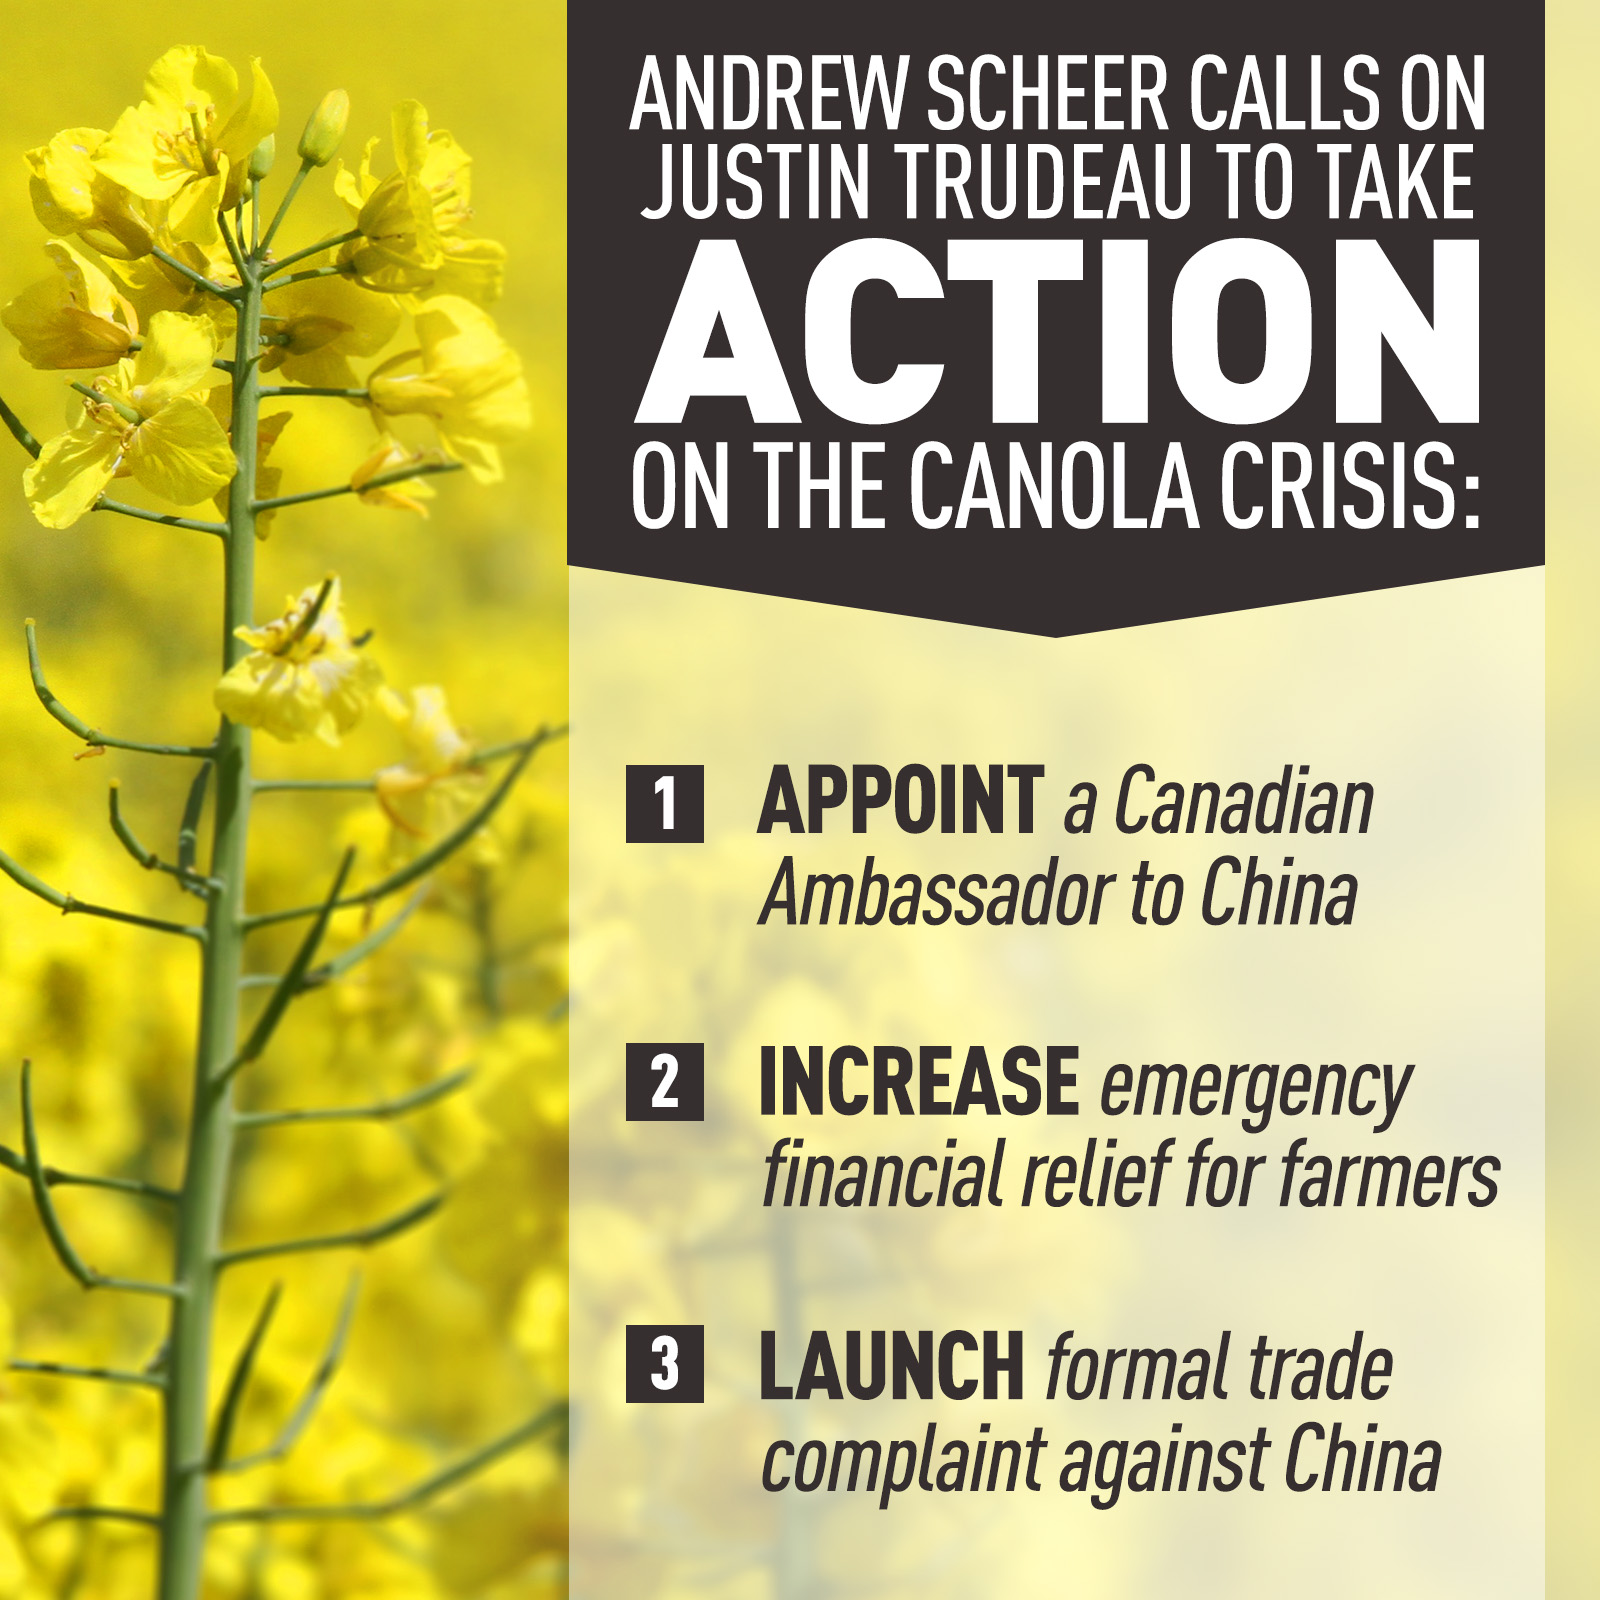 CONSERVATIVES SET OUT PLAN FOR SOLUTION TO CANOLA CRISIS